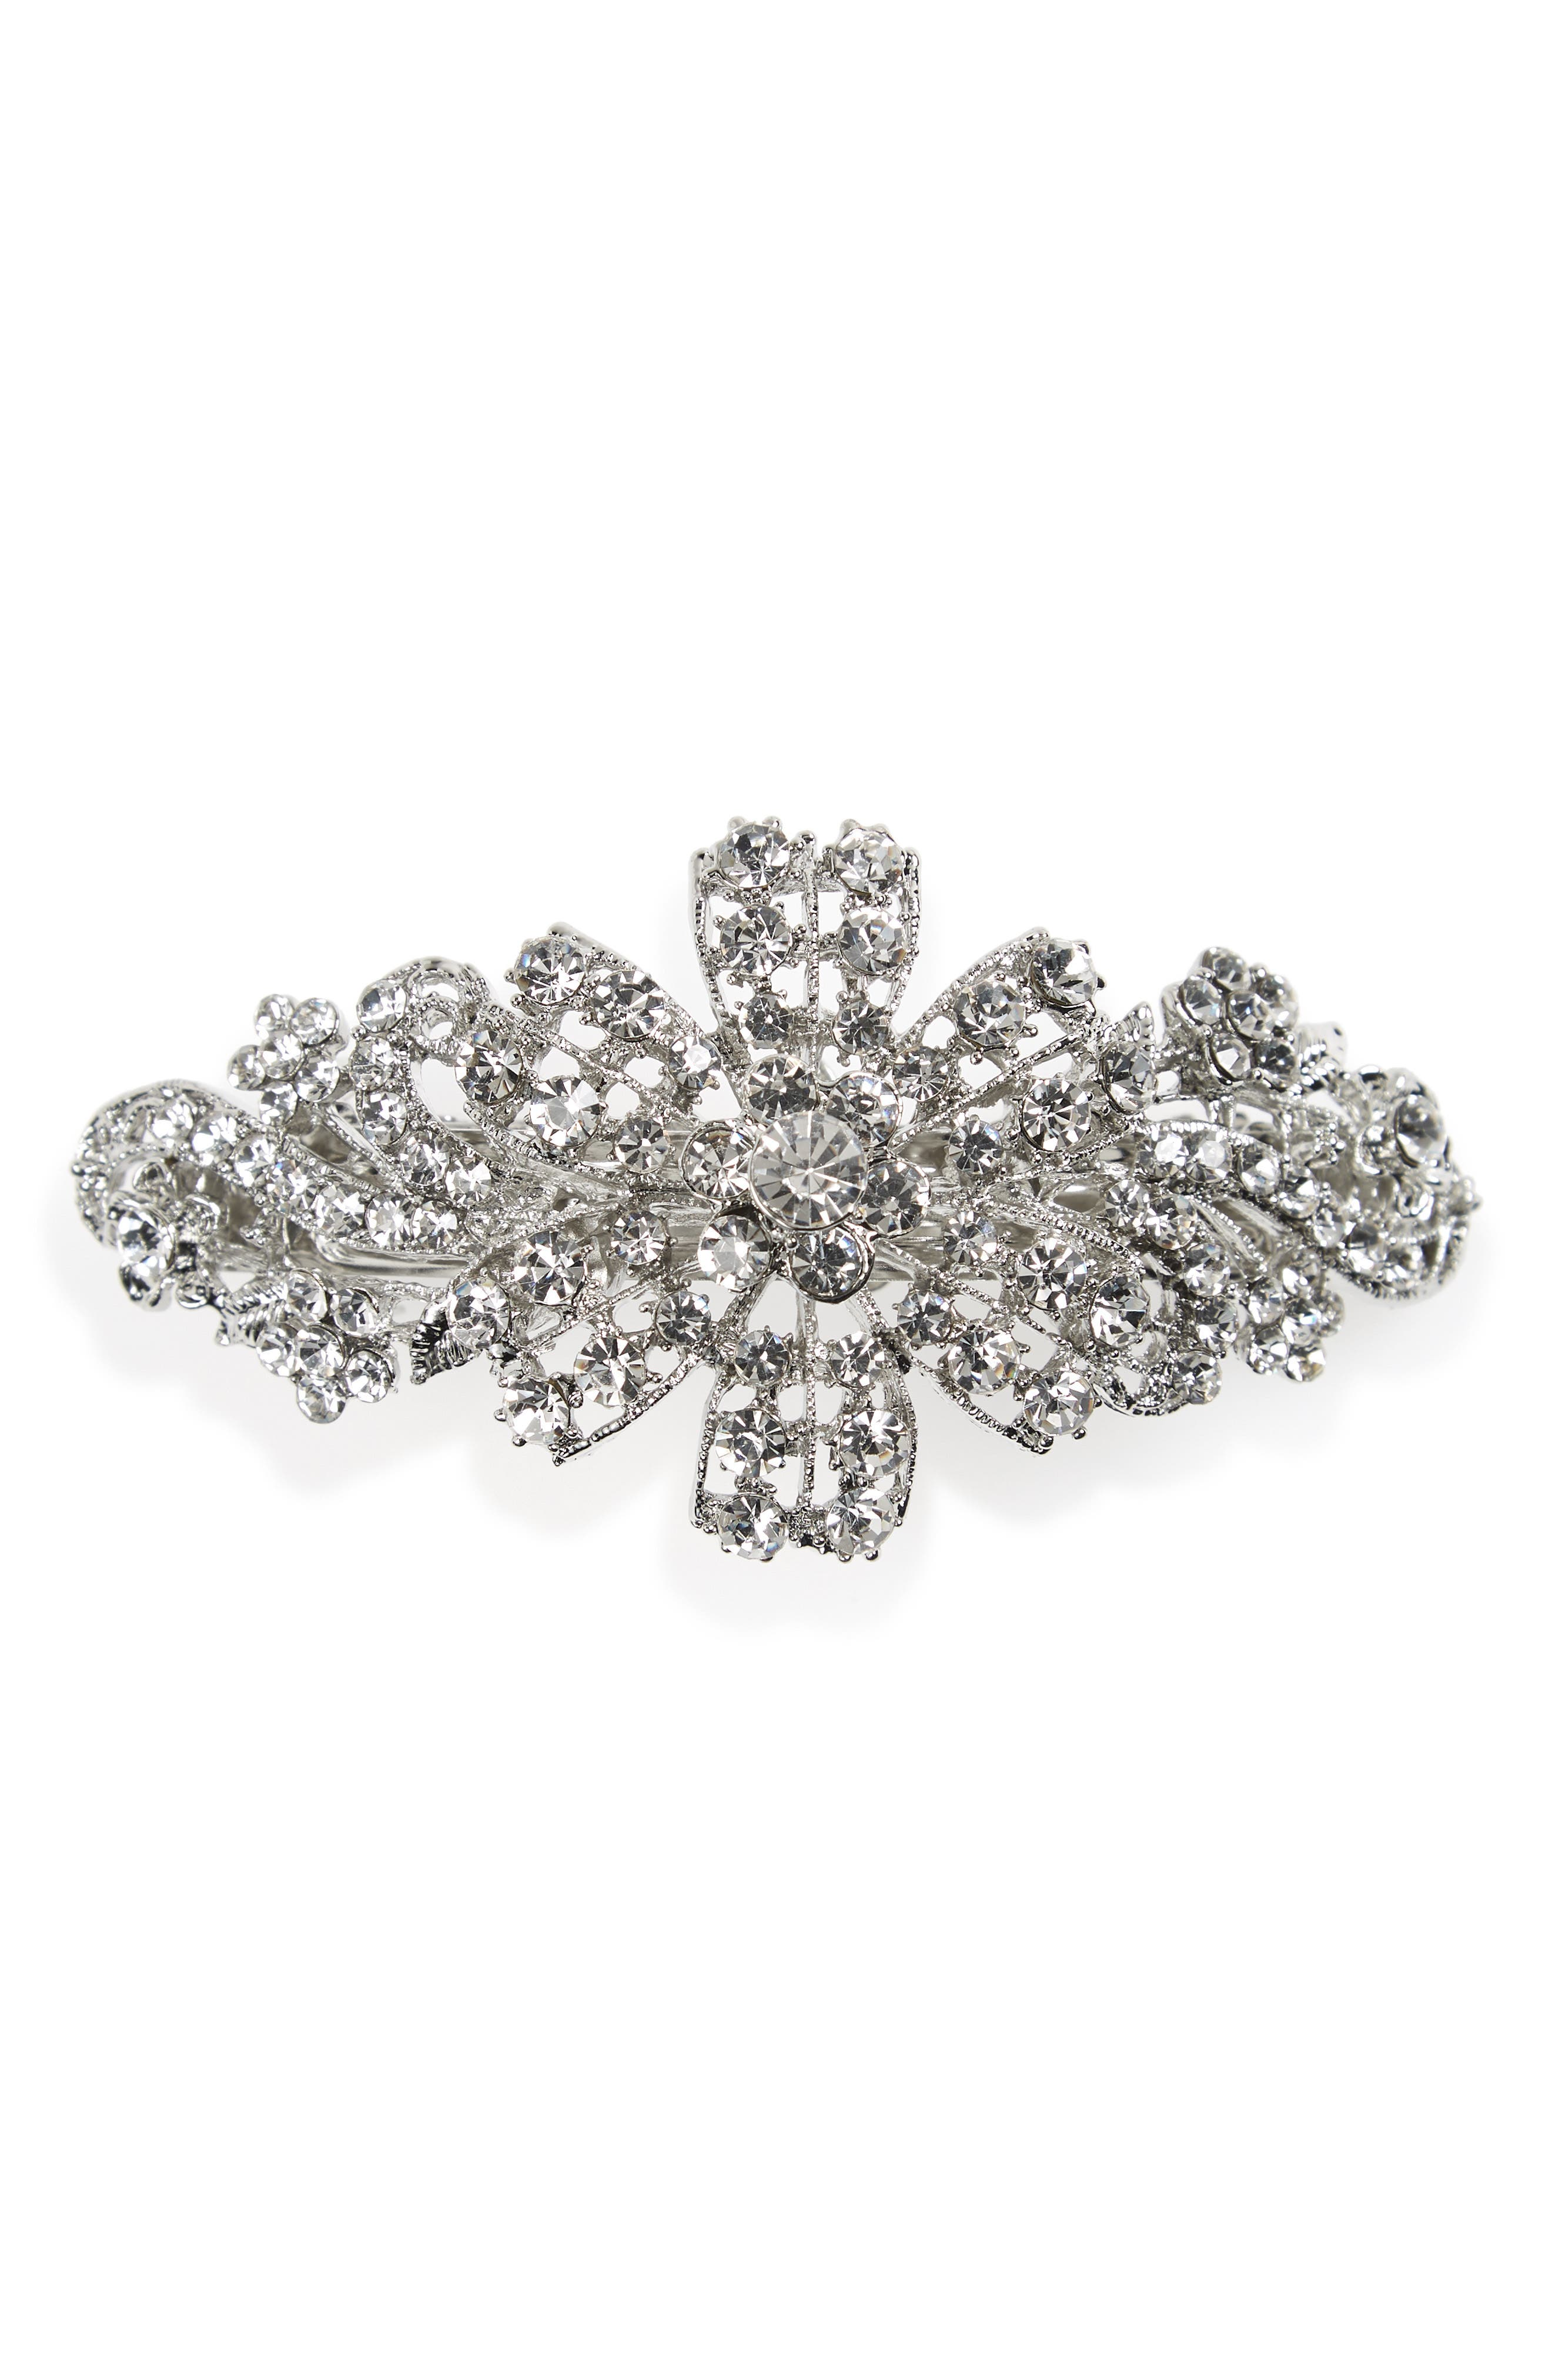 1920s Accessories | Great Gatsby Accessories Guide Tasha Floral Crystal Barrette $19.20 AT vintagedancer.com